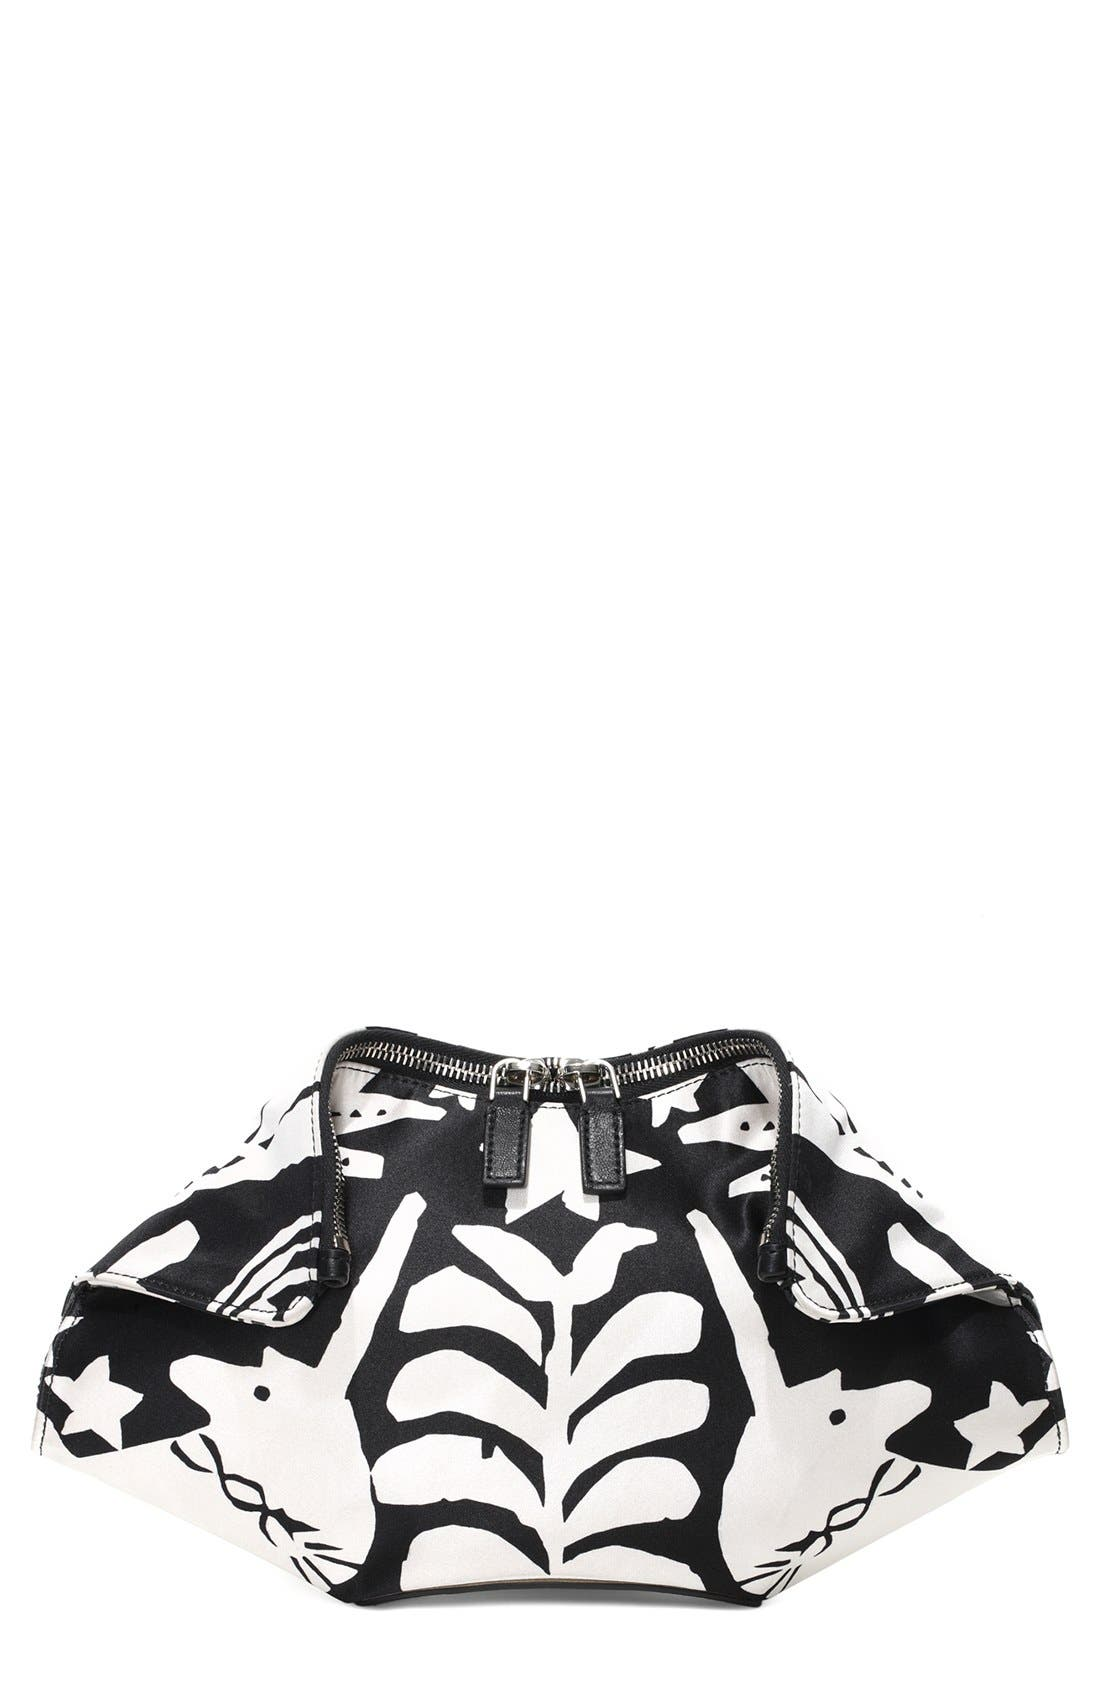 Alternate Image 1 Selected - Alexander McQueen 'De Manta' Print Silk Clutch